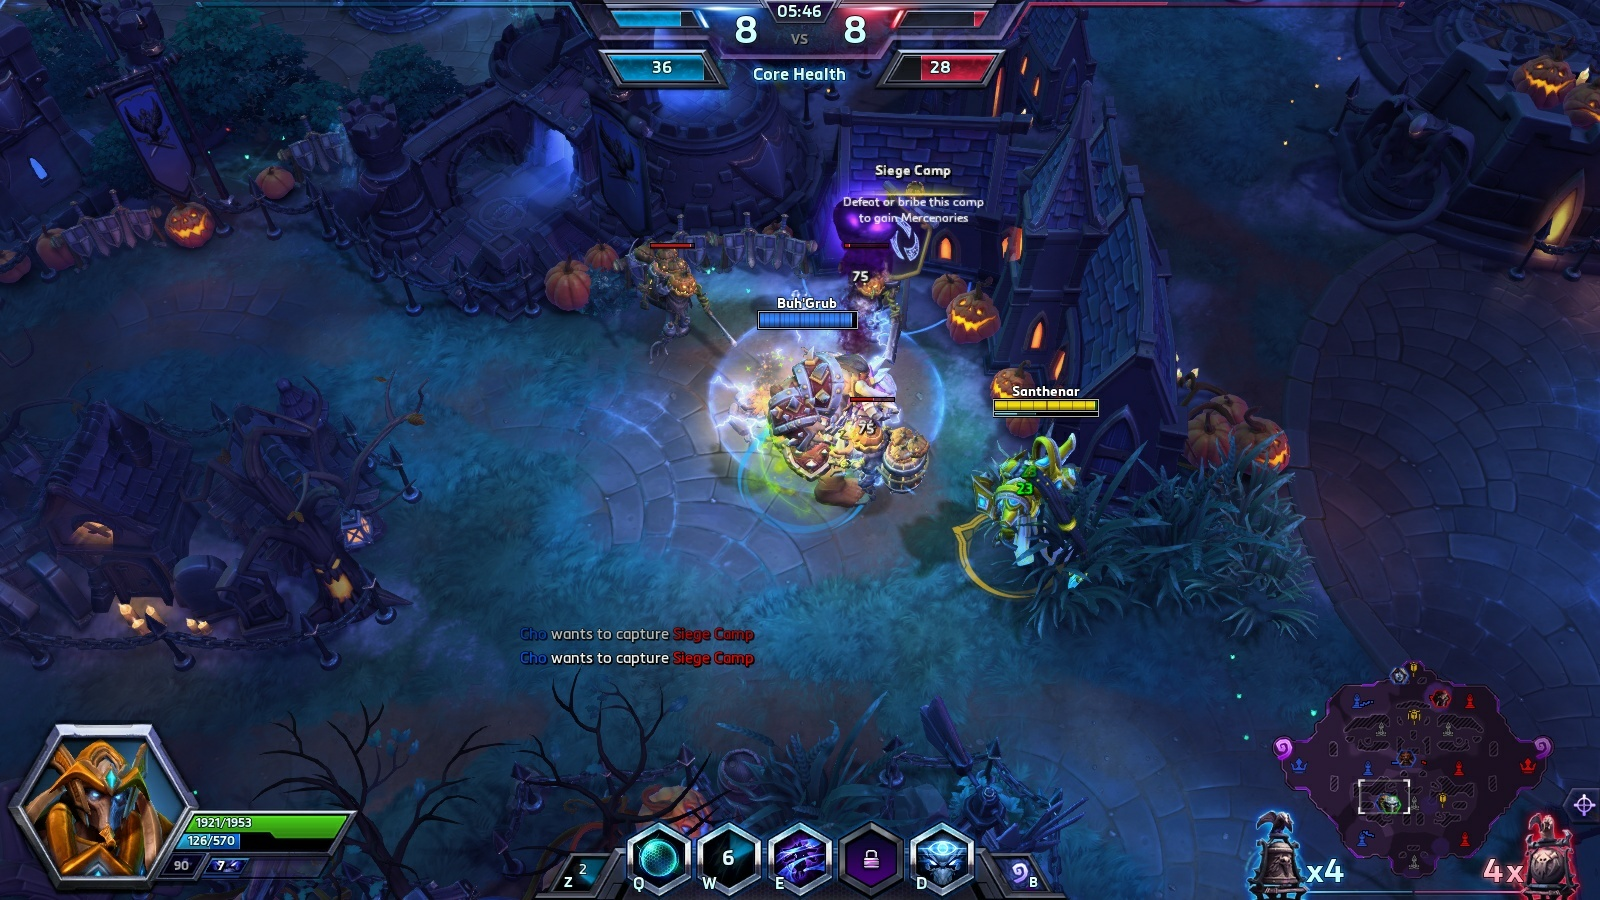 Heroes Of The Storm My Builds Tassadar And Jaina Superior Realities An executor without equal, tassadar has fought tirelessly to purify the koprulu sector of zerg infestation. heroes of the storm my builds